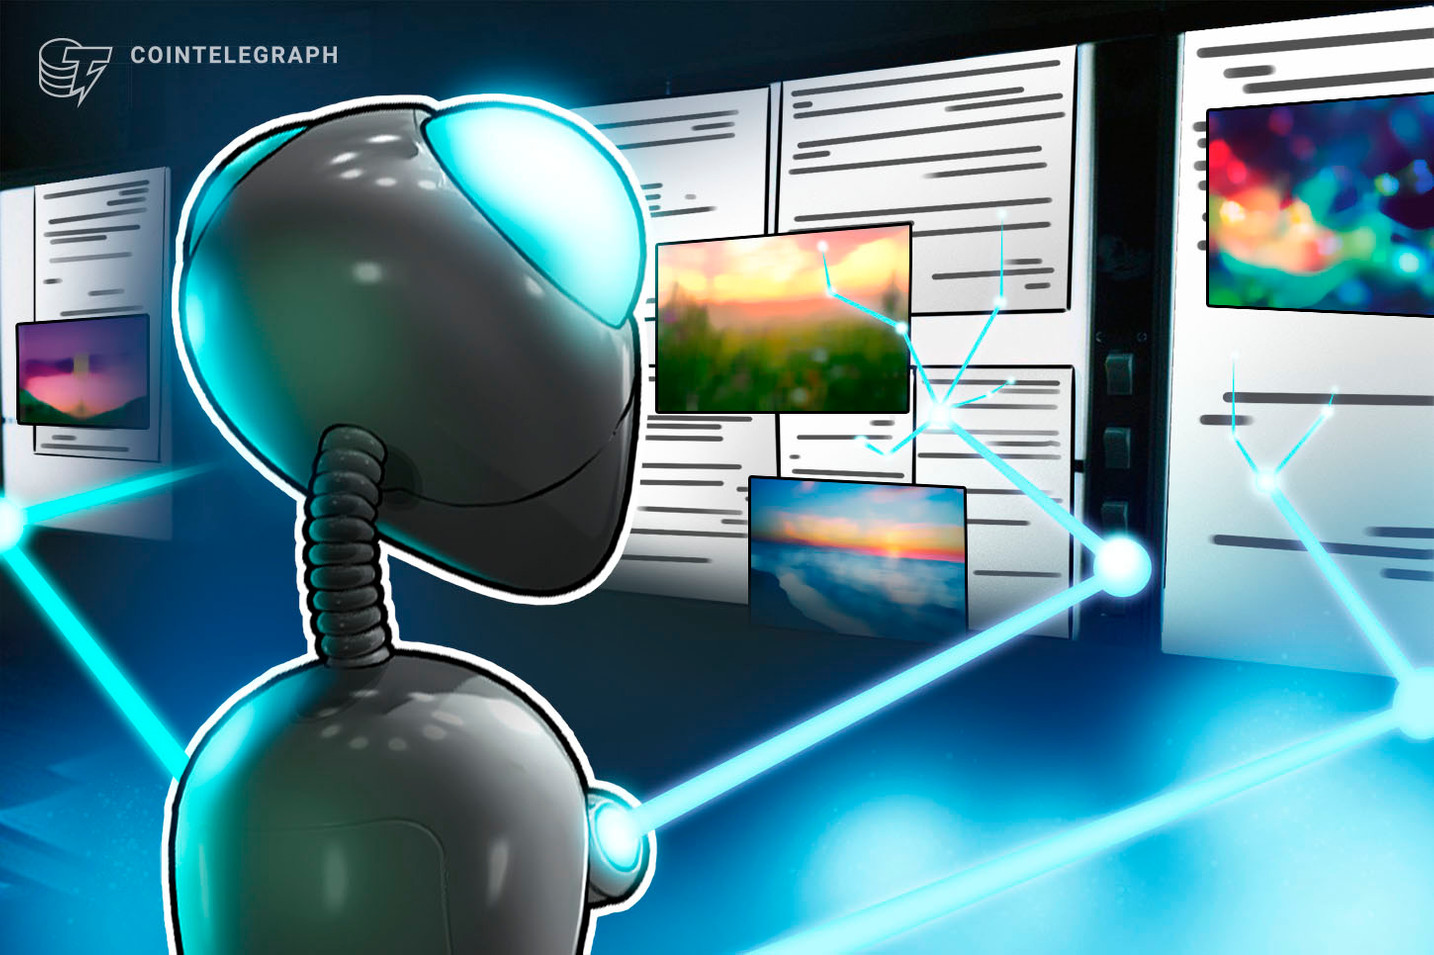 New York Times Trials Blockchain System to Combat Misleading Pictures